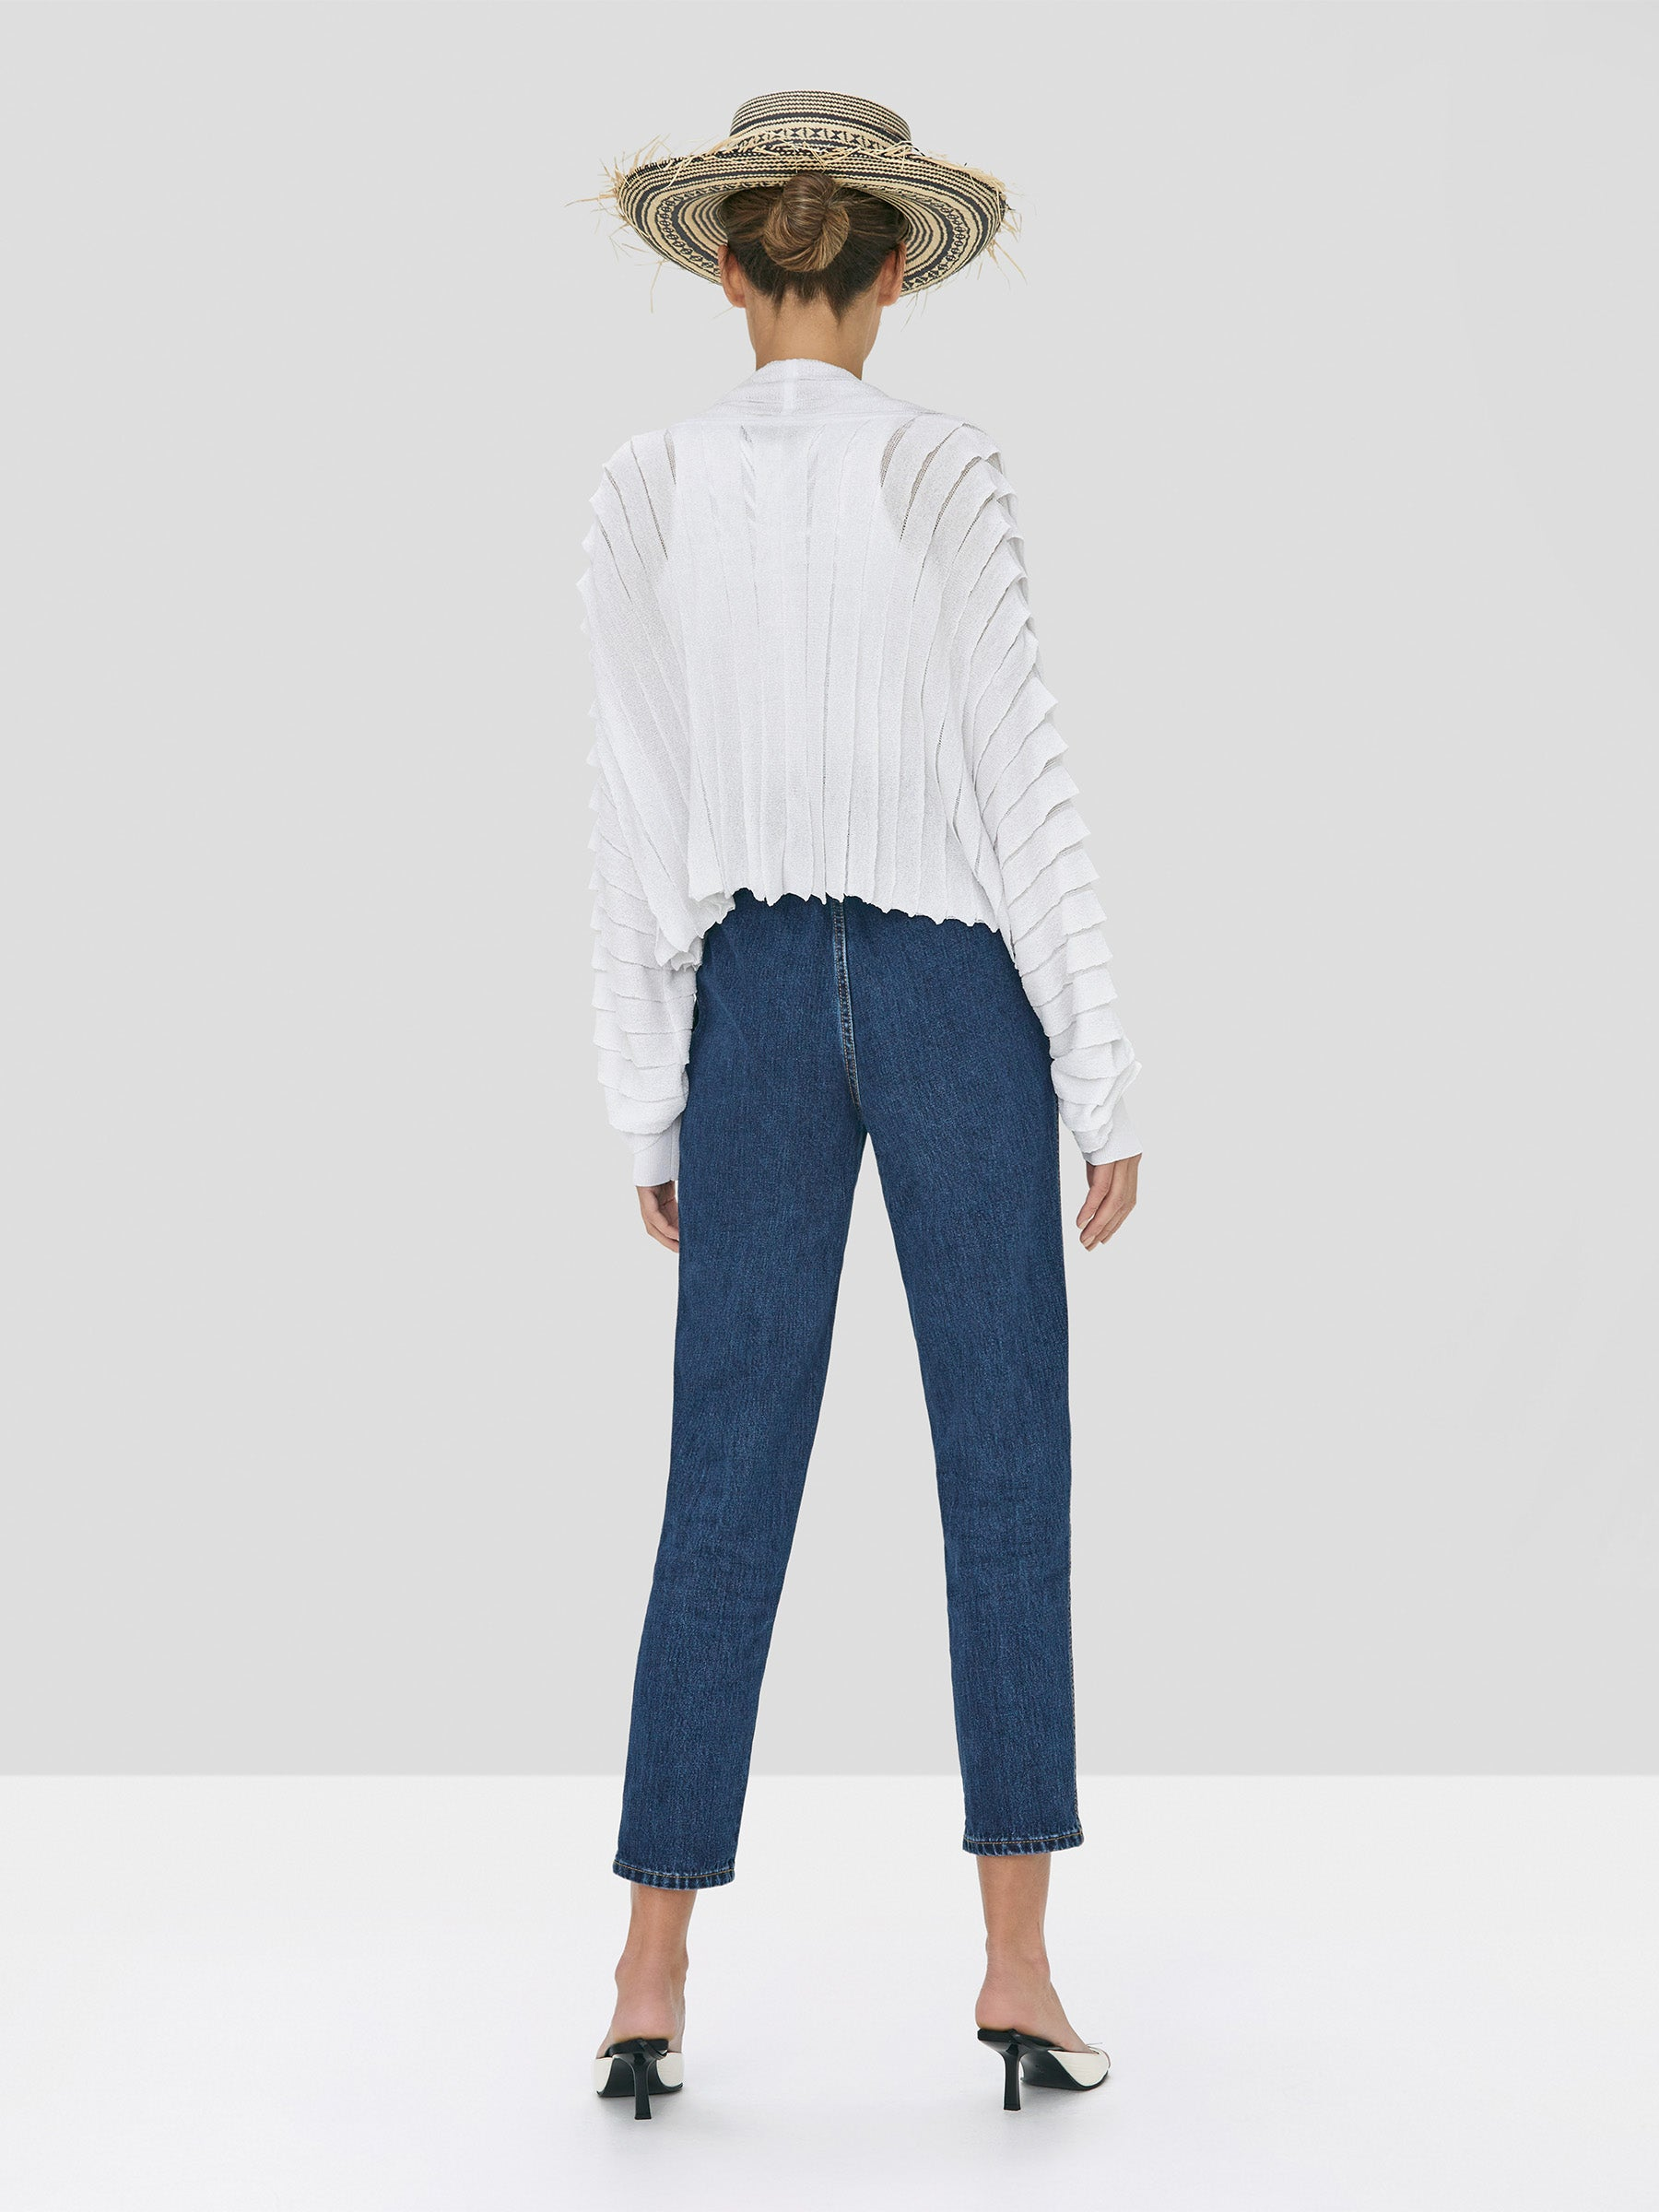 Alexis Oziel Top in White and Stannis Denim Pant in Washed Denim from Spring Summer 2020 Collection - Rear View